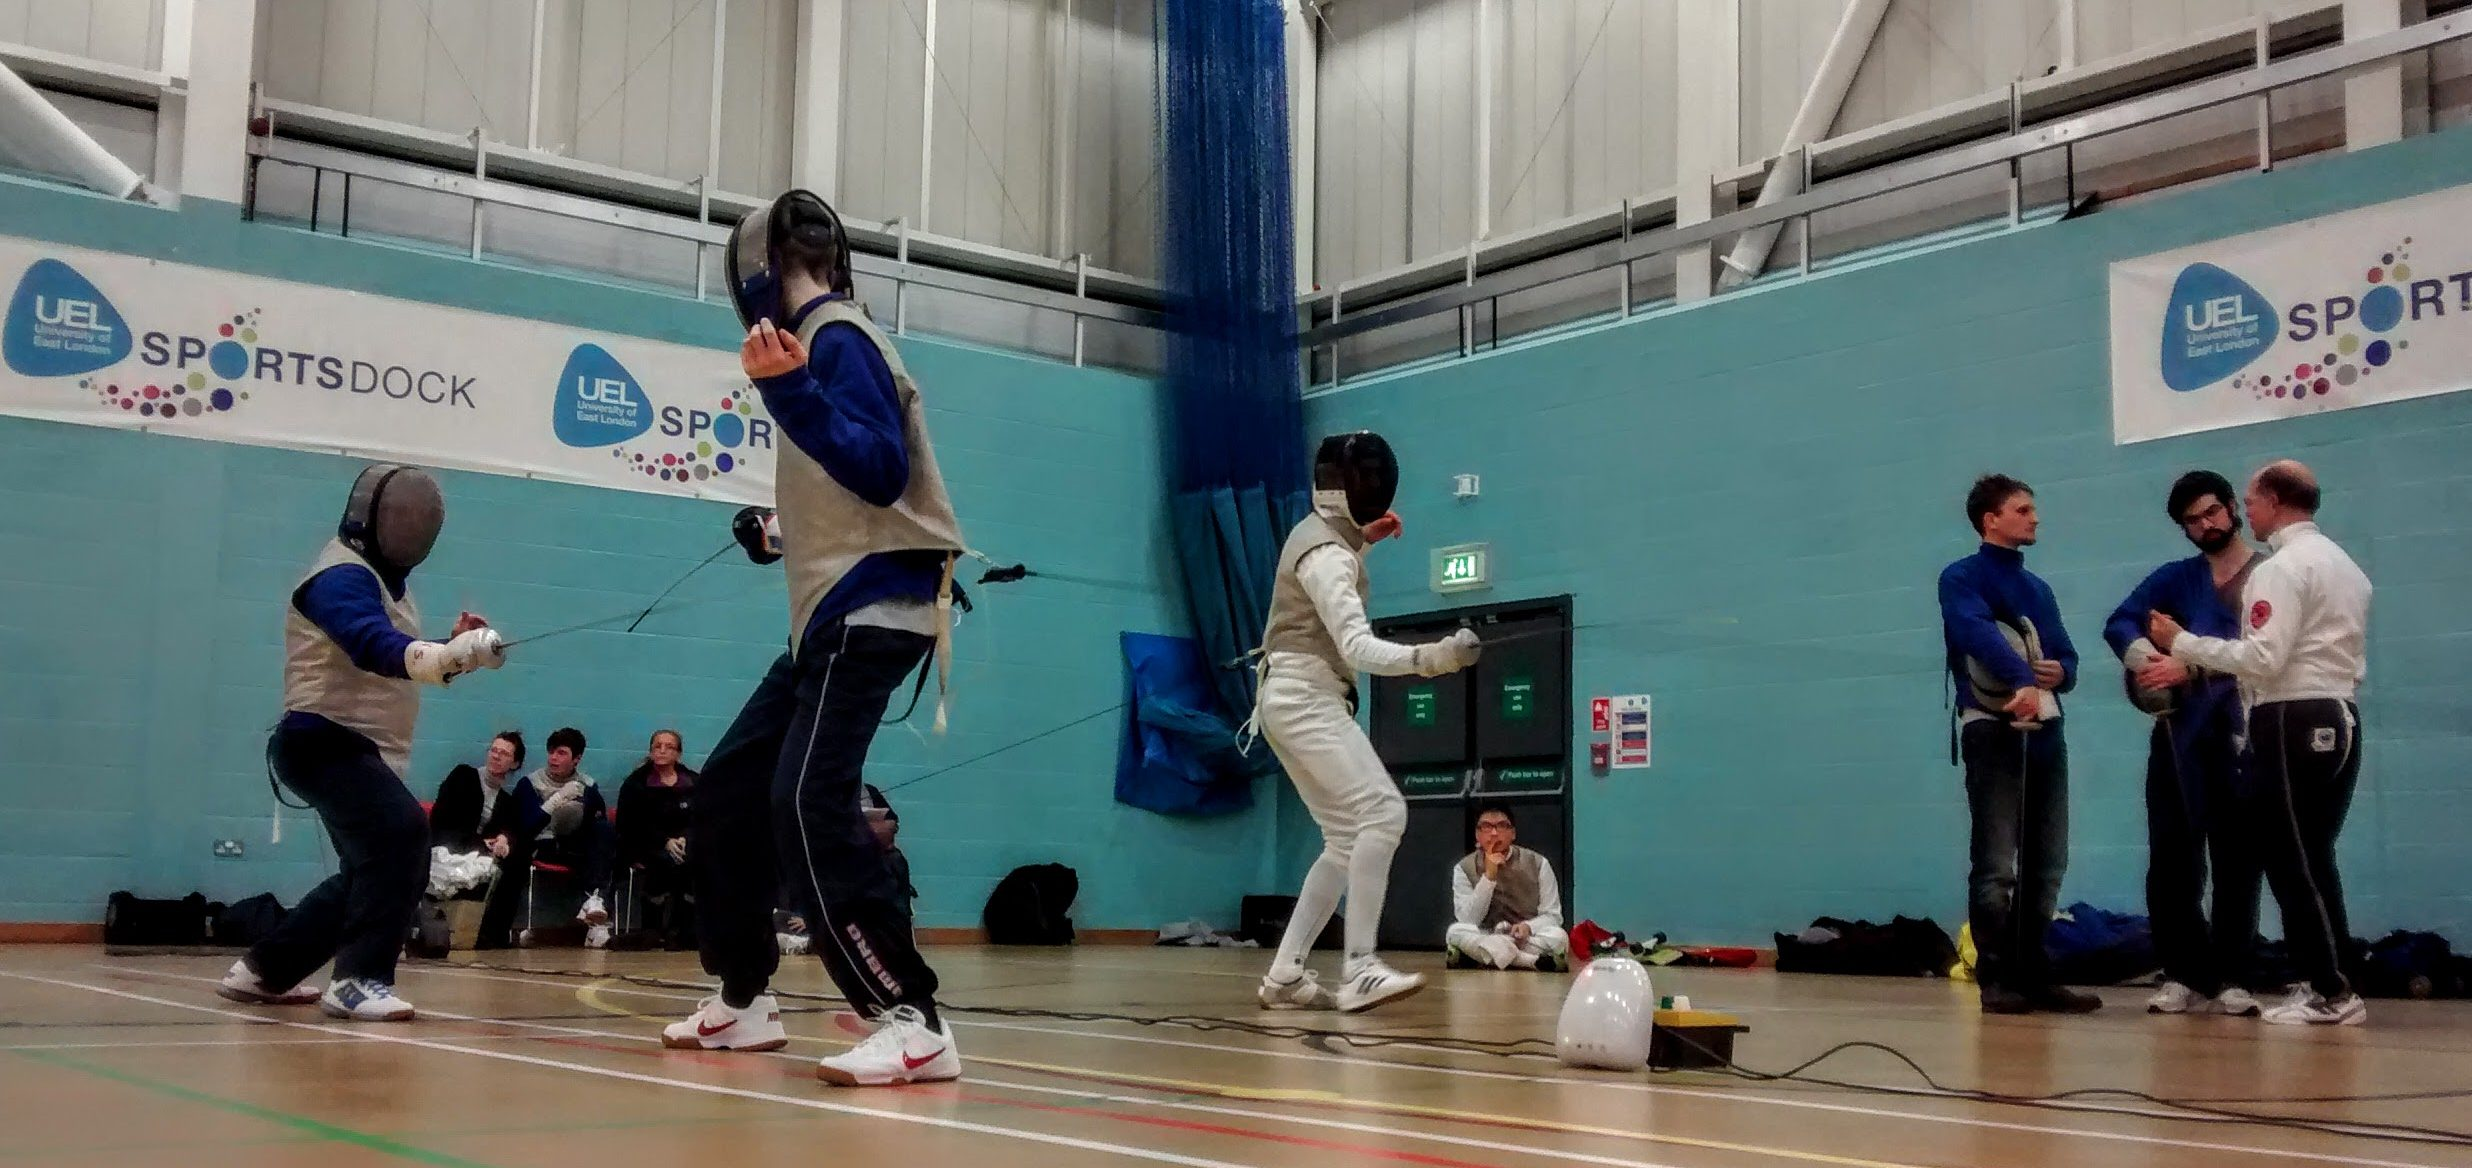 Pictures of fencers and coach